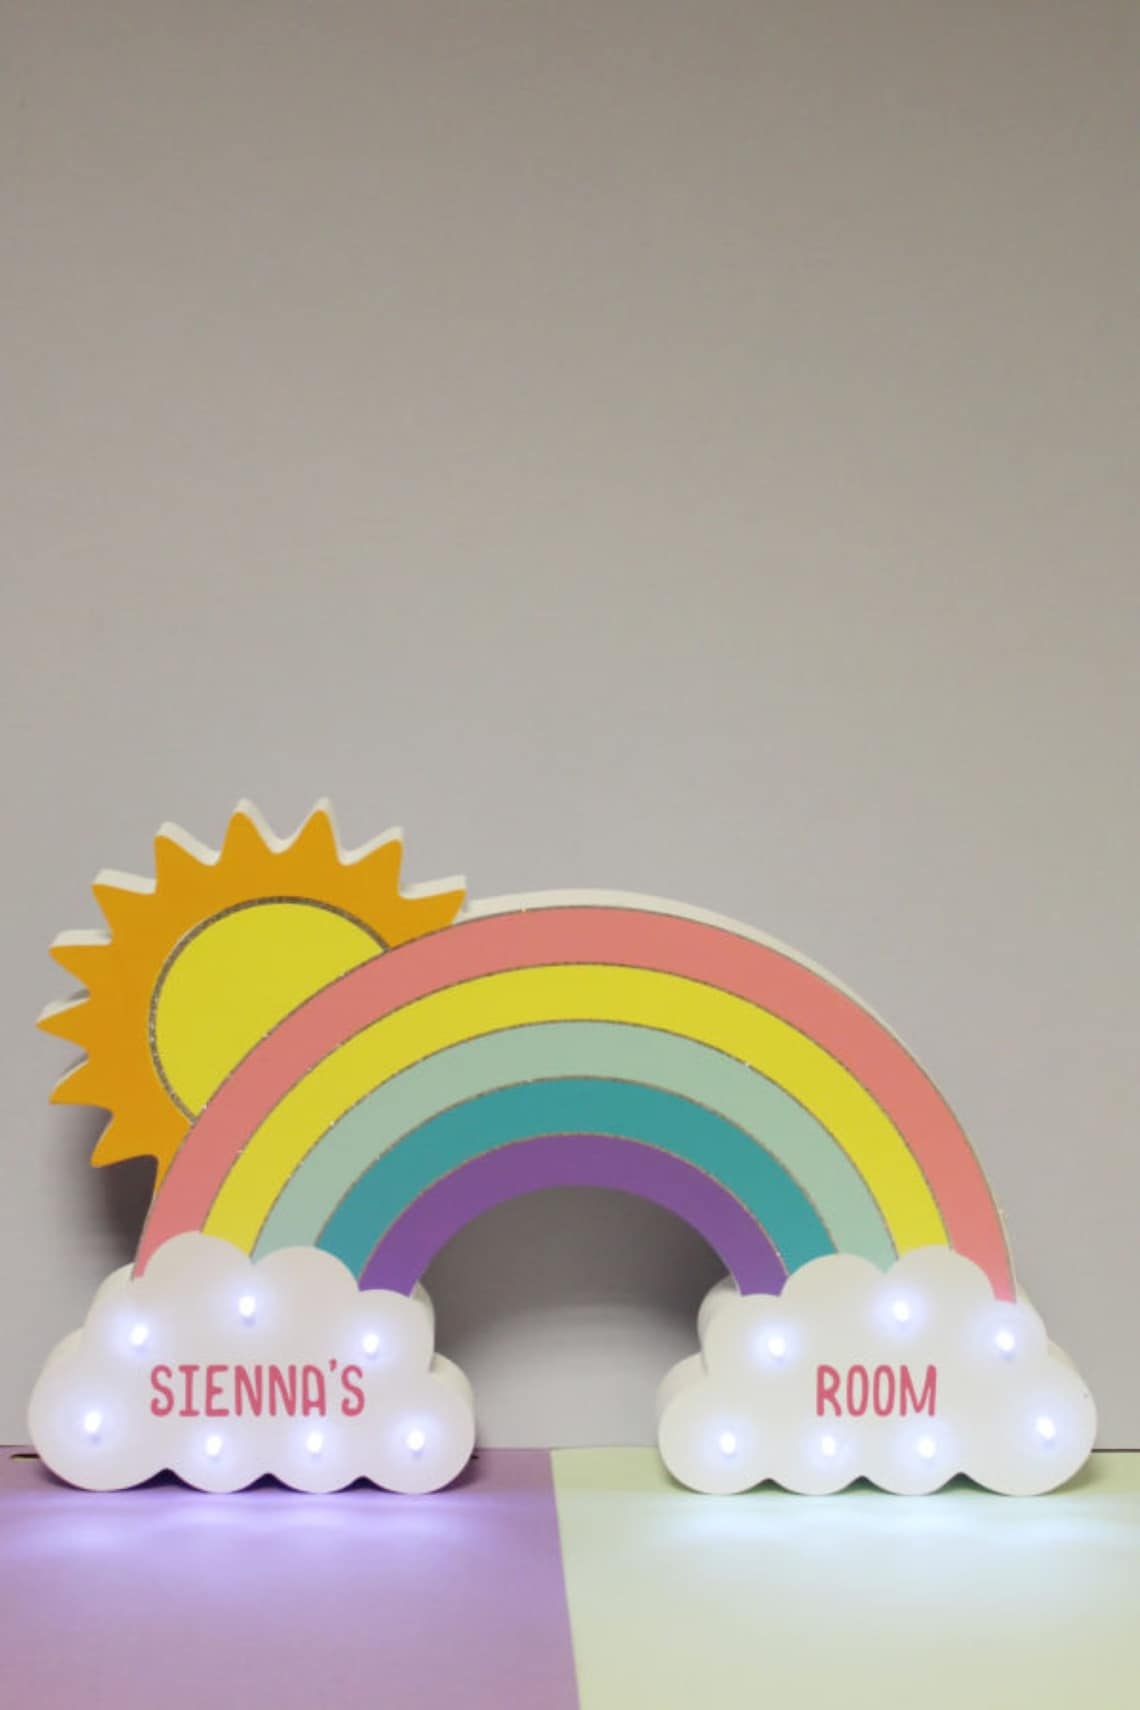 Rainbow LED Wall Light, Personalized Wooden Gift, Children's Decor Accessory, Nursery, Toddler's Bedroom - Eclairage